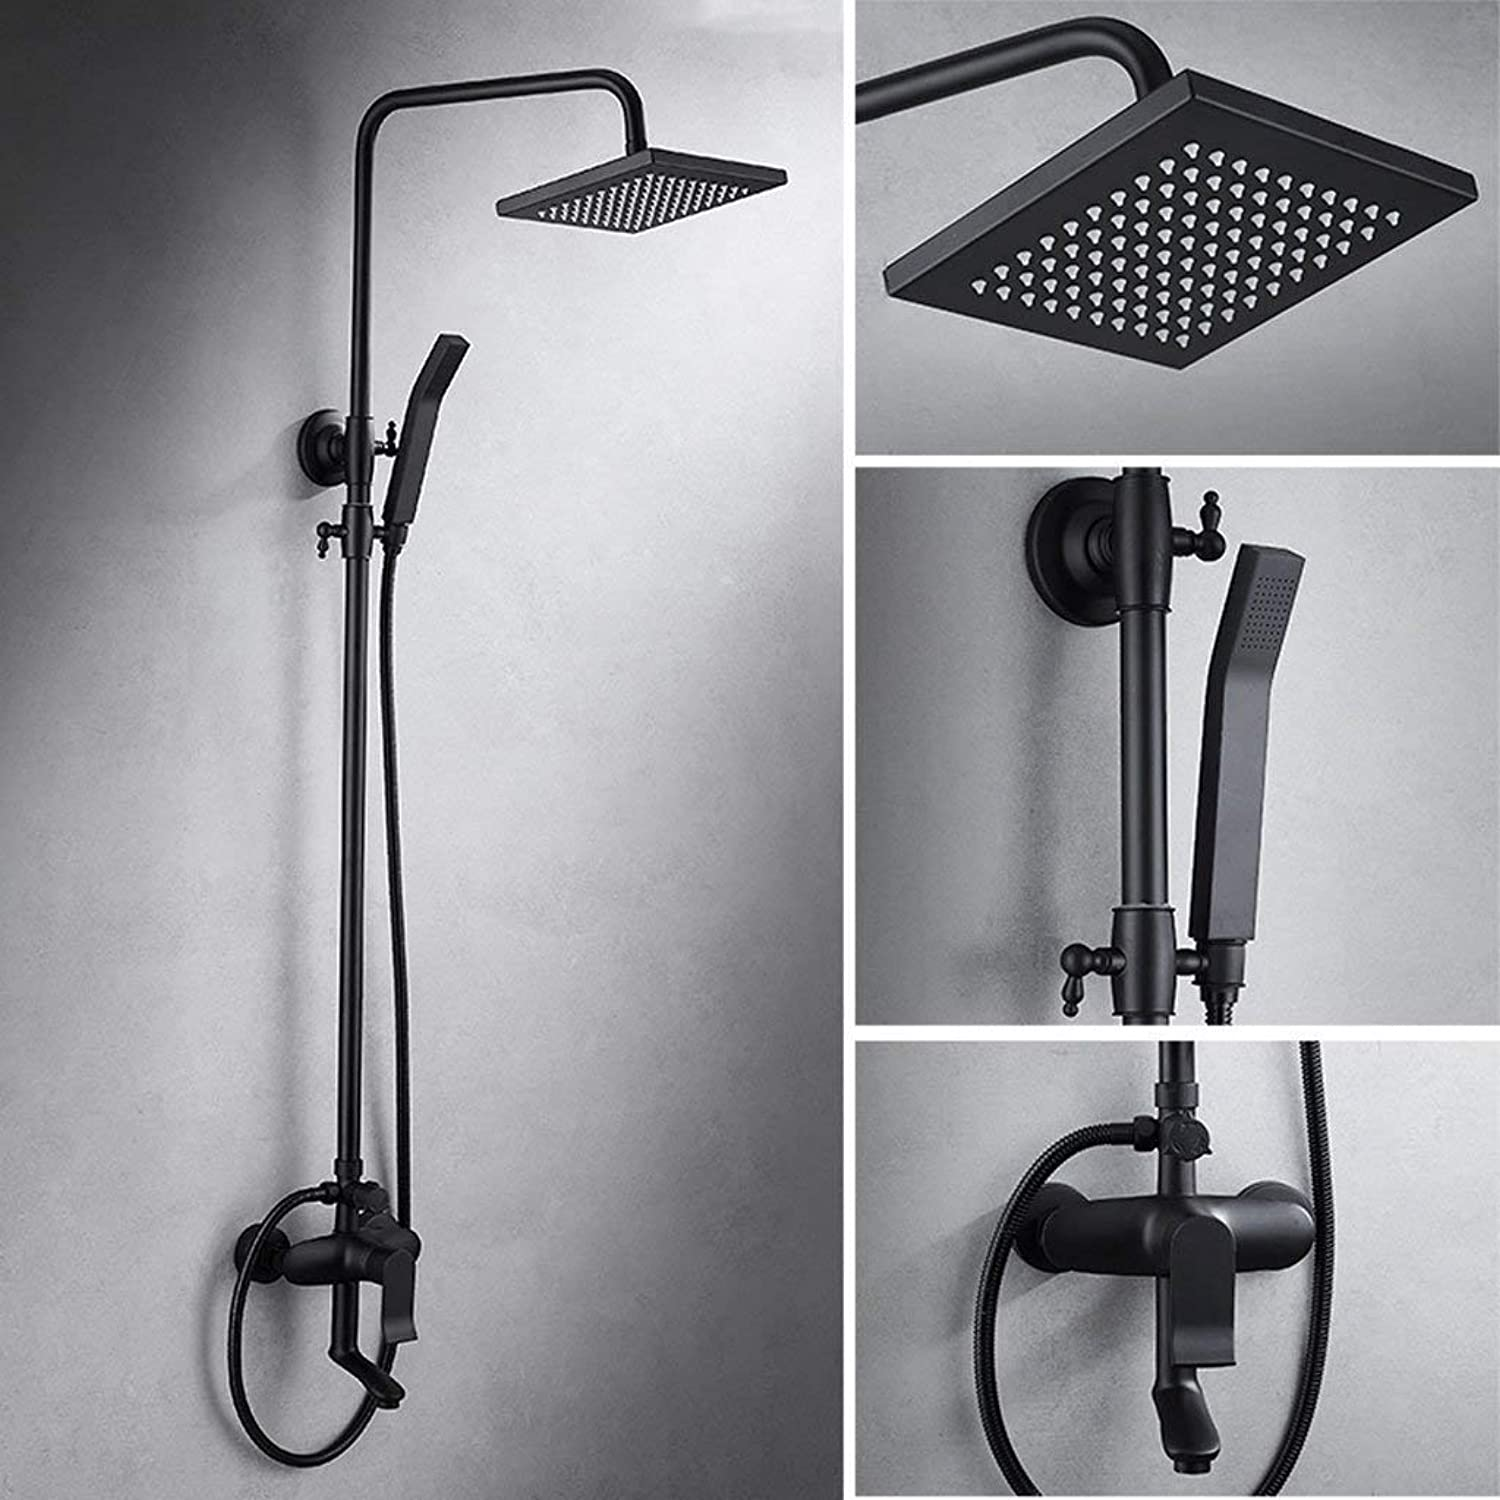 Rain Bathroom Shower Set Faucet Black Bronze Dual Handle Shower Hot And Cold Taps With Handshower